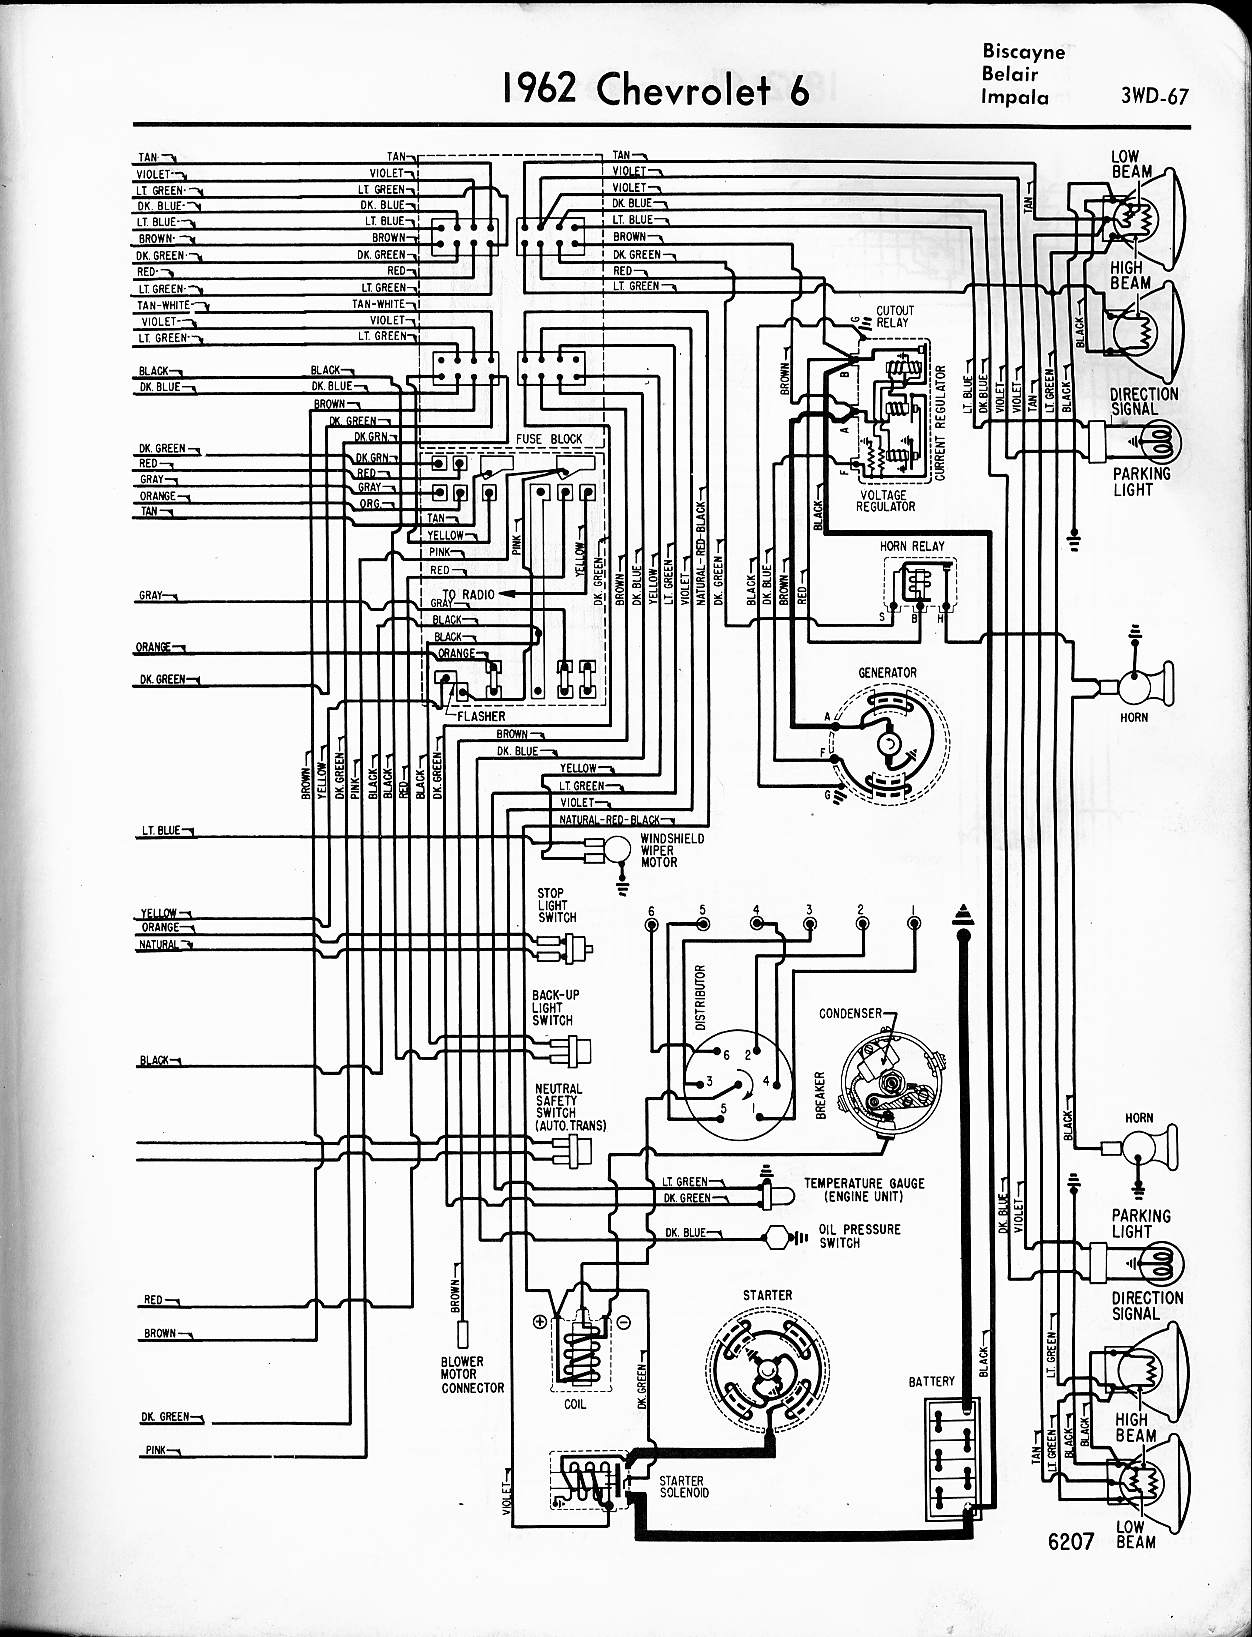 Jeep Cj5 Wiring Diagram For A